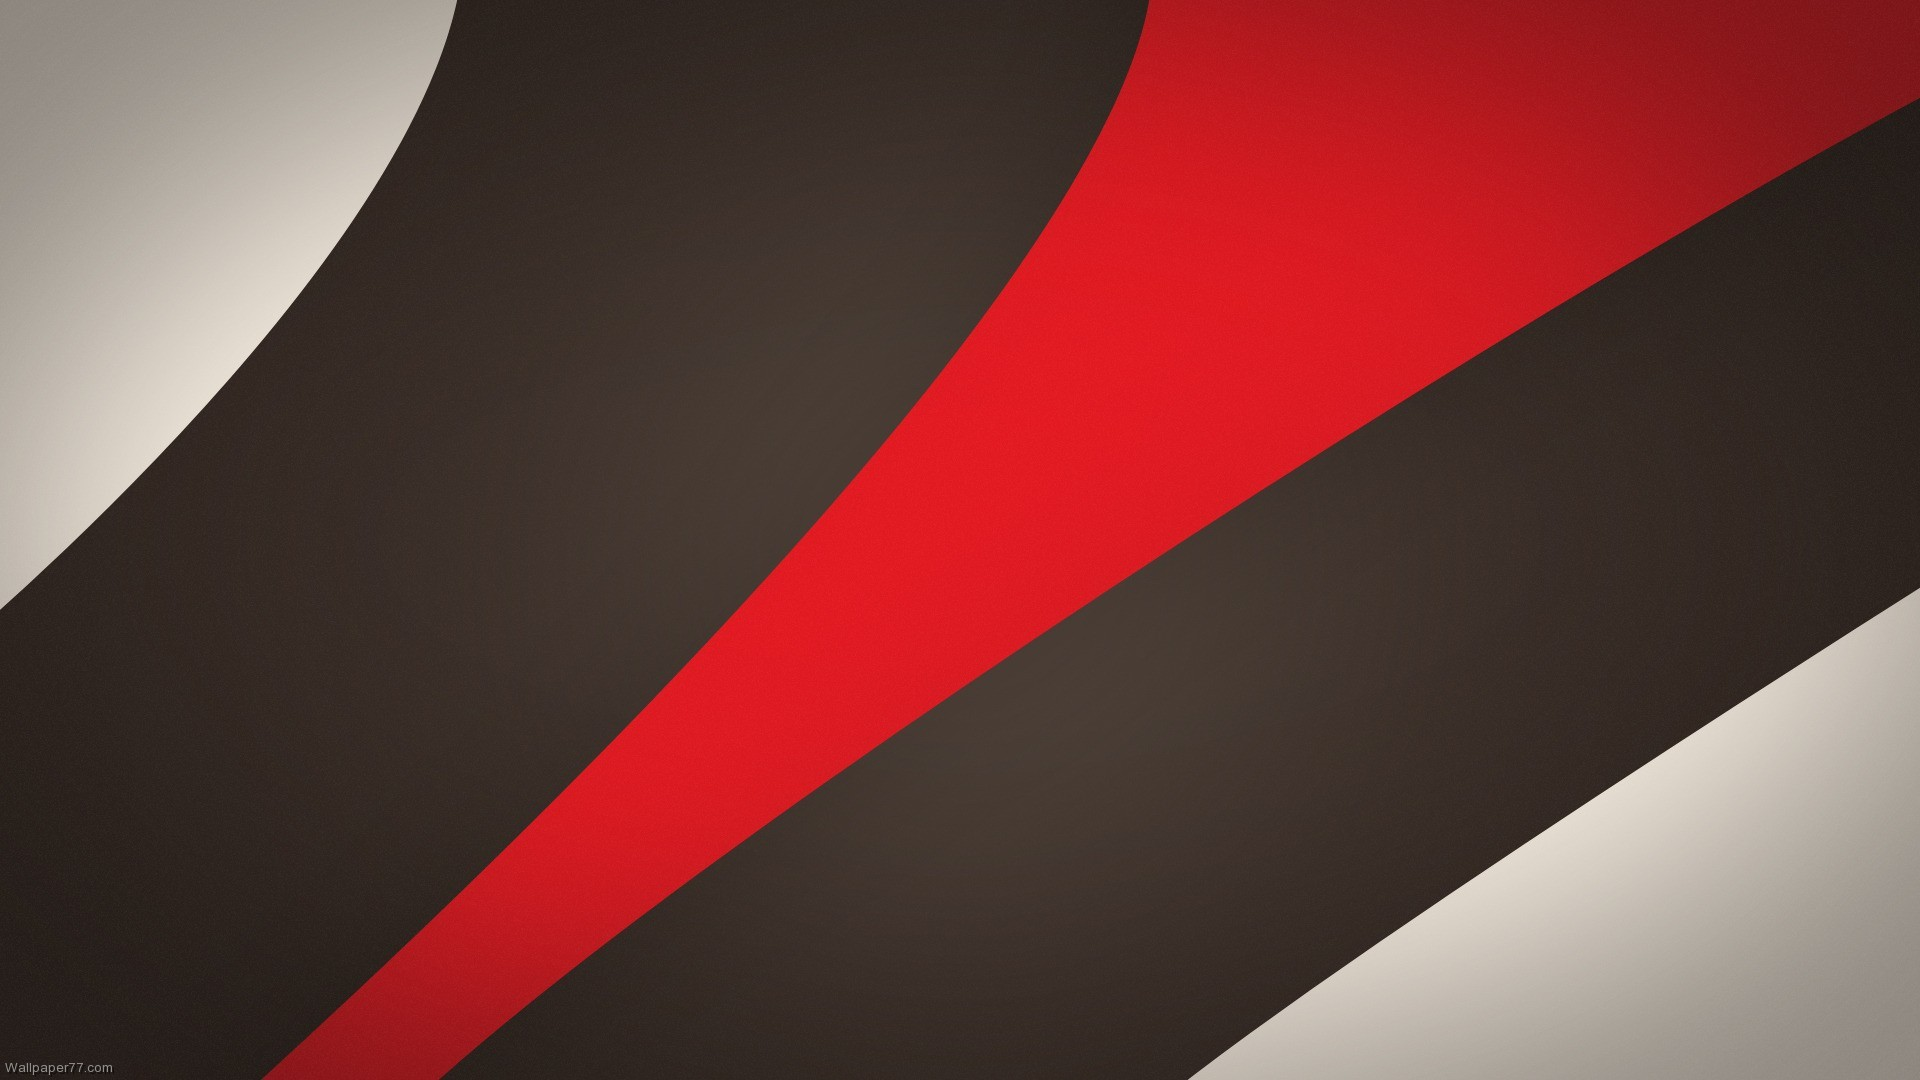 1920x1080 Red and Black Abstract Wallpaper Vector